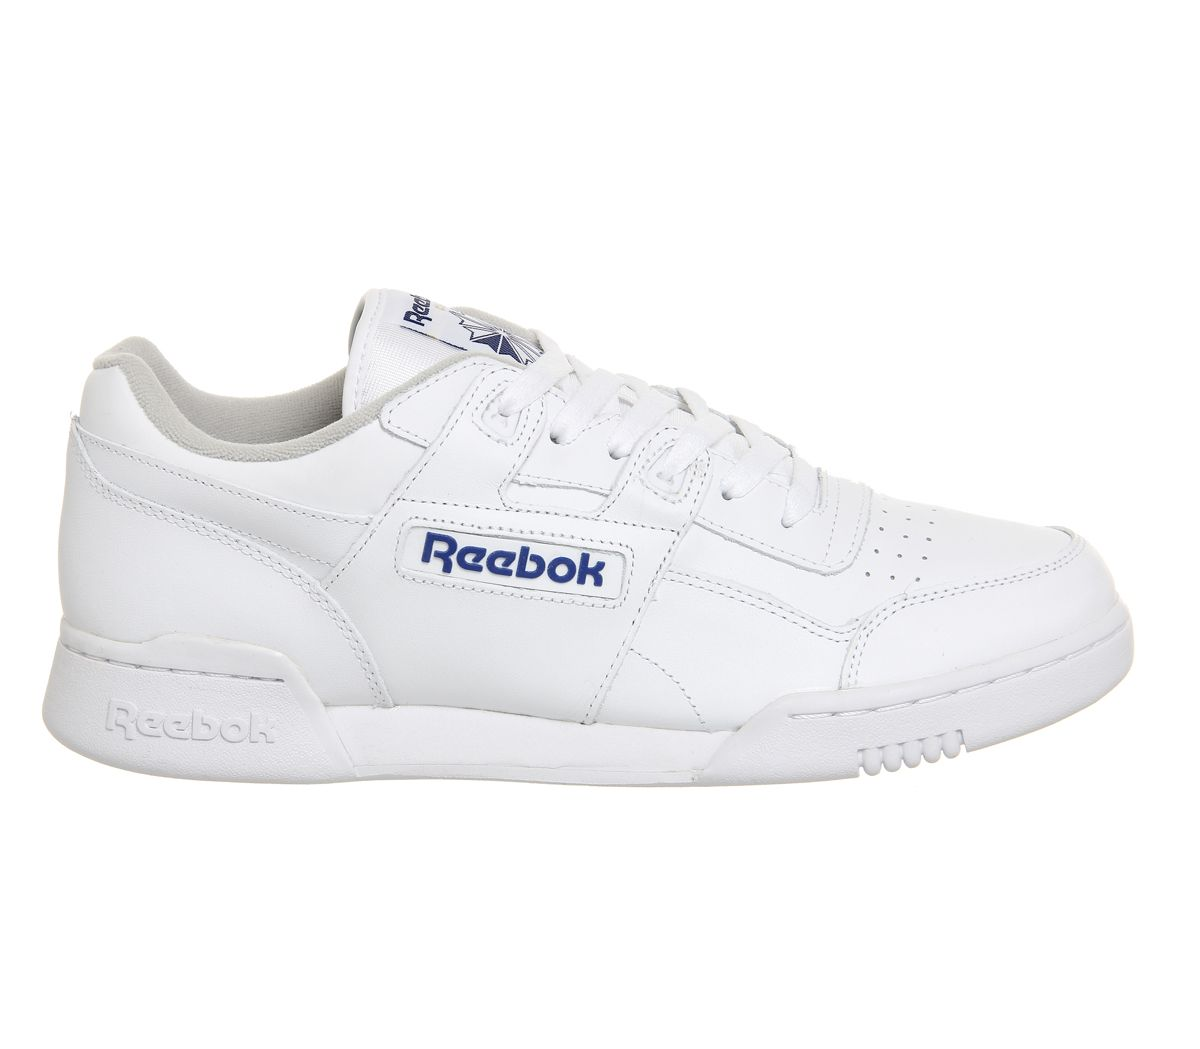 67ee108531a81 Reebok Workout Plus White Royal - His trainers